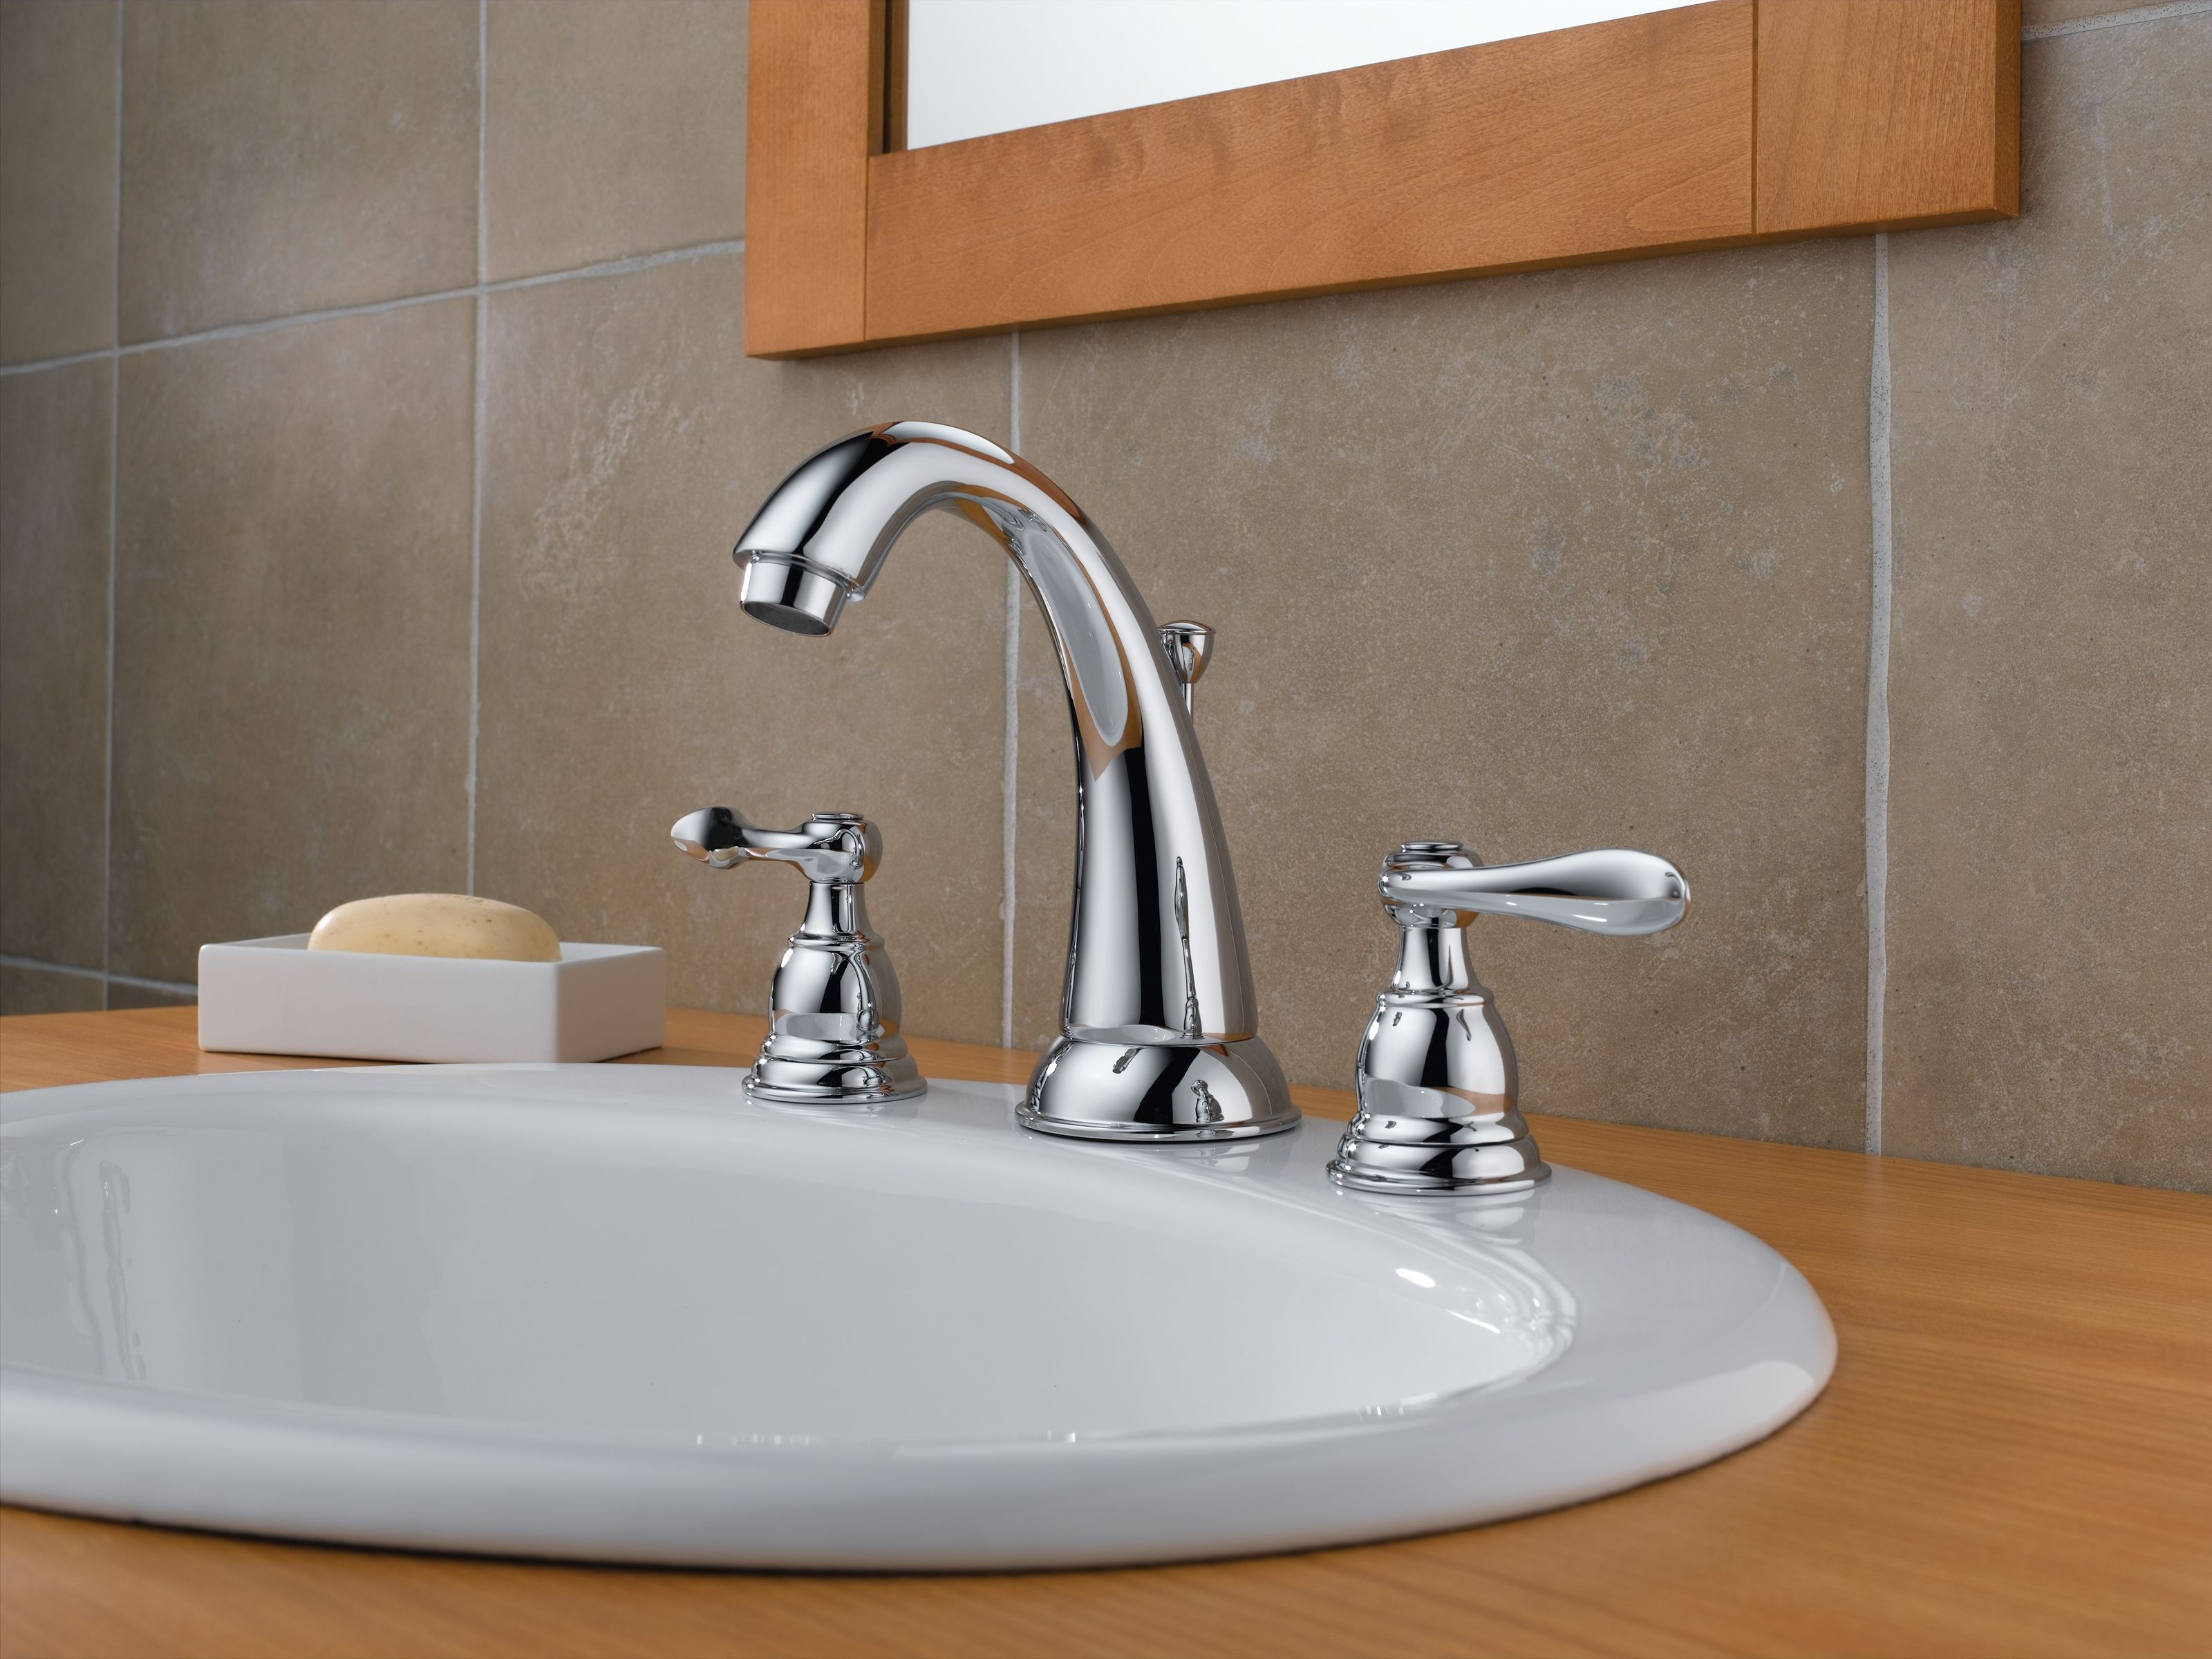 best hero com faucets fixtures the of kitchen image faucet reviews